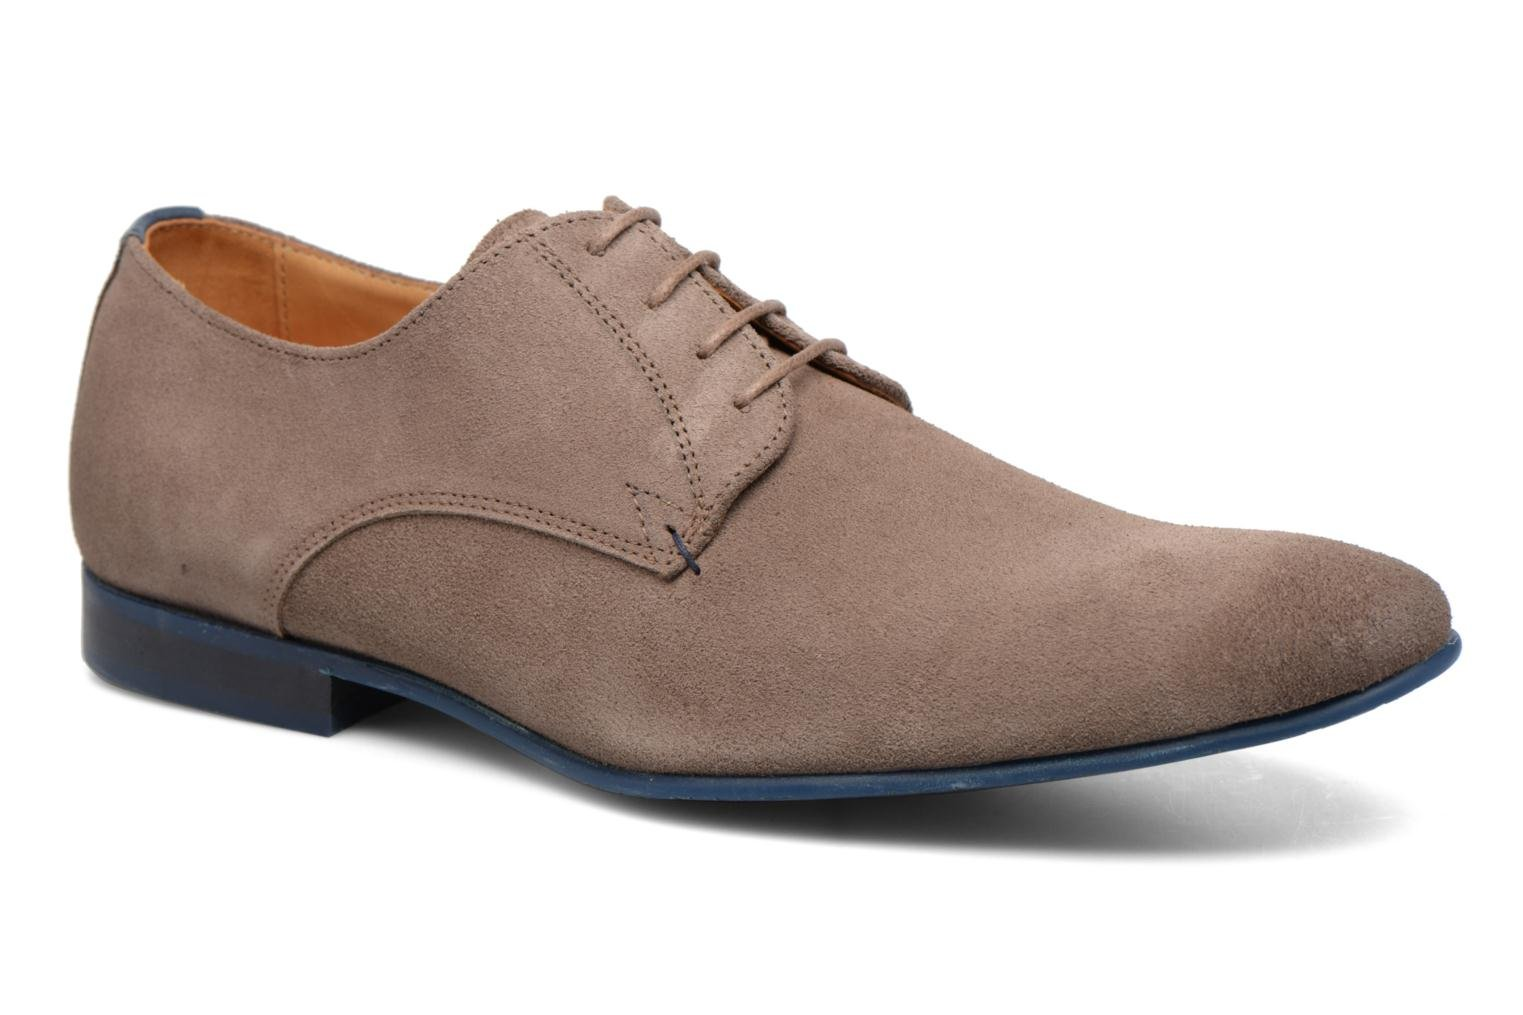 Peter suede taupe